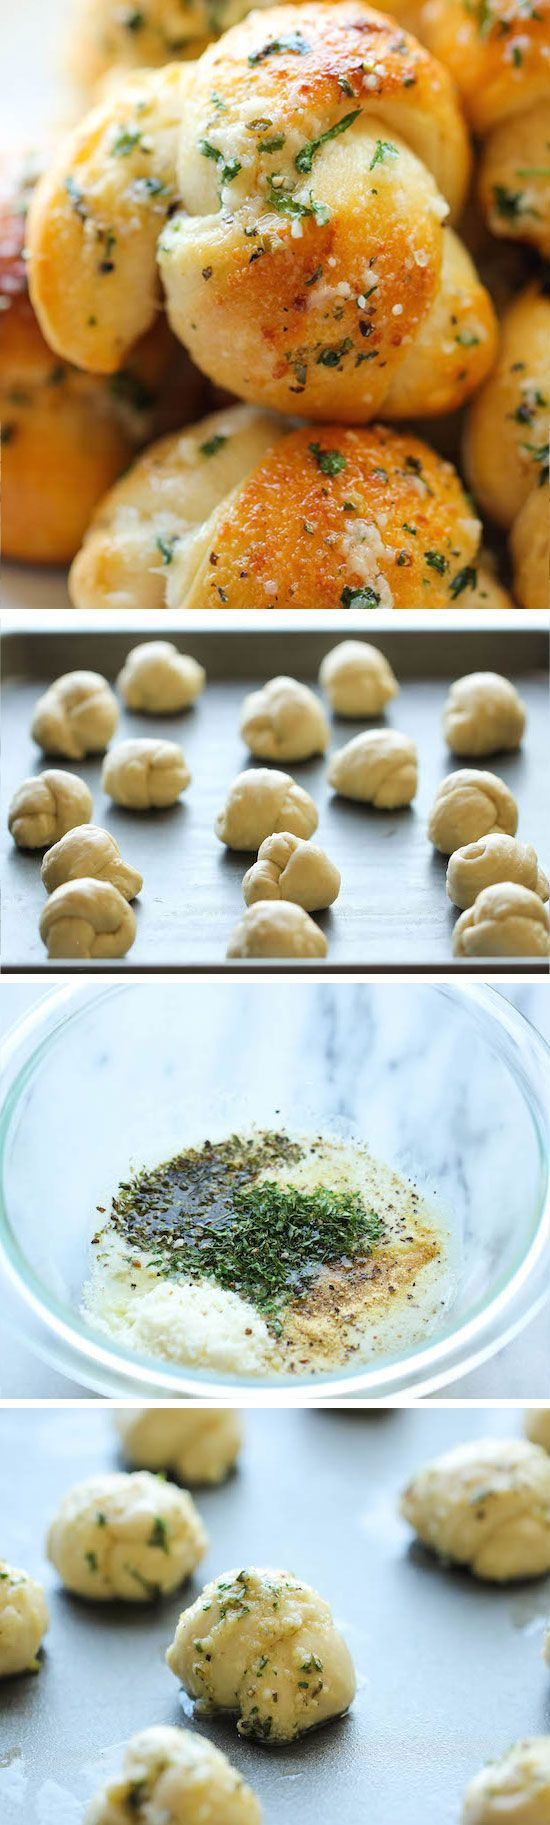 Easy Garlic Parmesan Knots | Easy Easter Appetizers for a Crowd | Easy Easter Food Ideas + Recipes